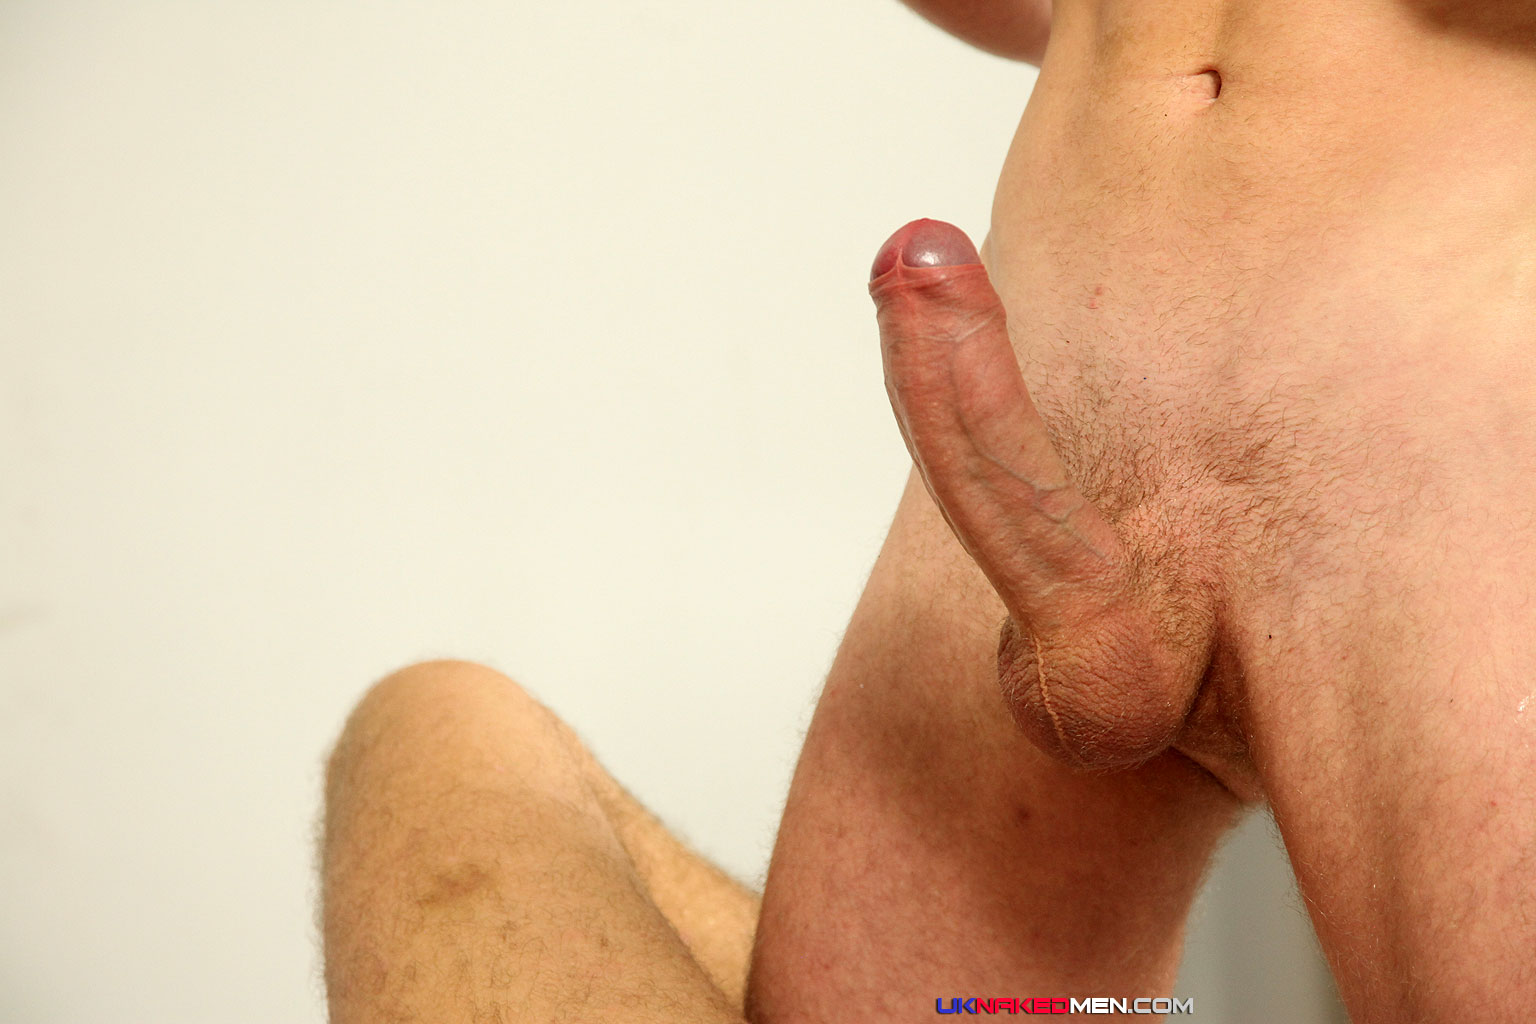 UK-Naked-Men-Tailor-Scott-and-Hugo-Mex-Huge-Uncut-Cocks-Fucking-16 Amateur Boyfriends With Massive Uncut Cocks Fucking At Work